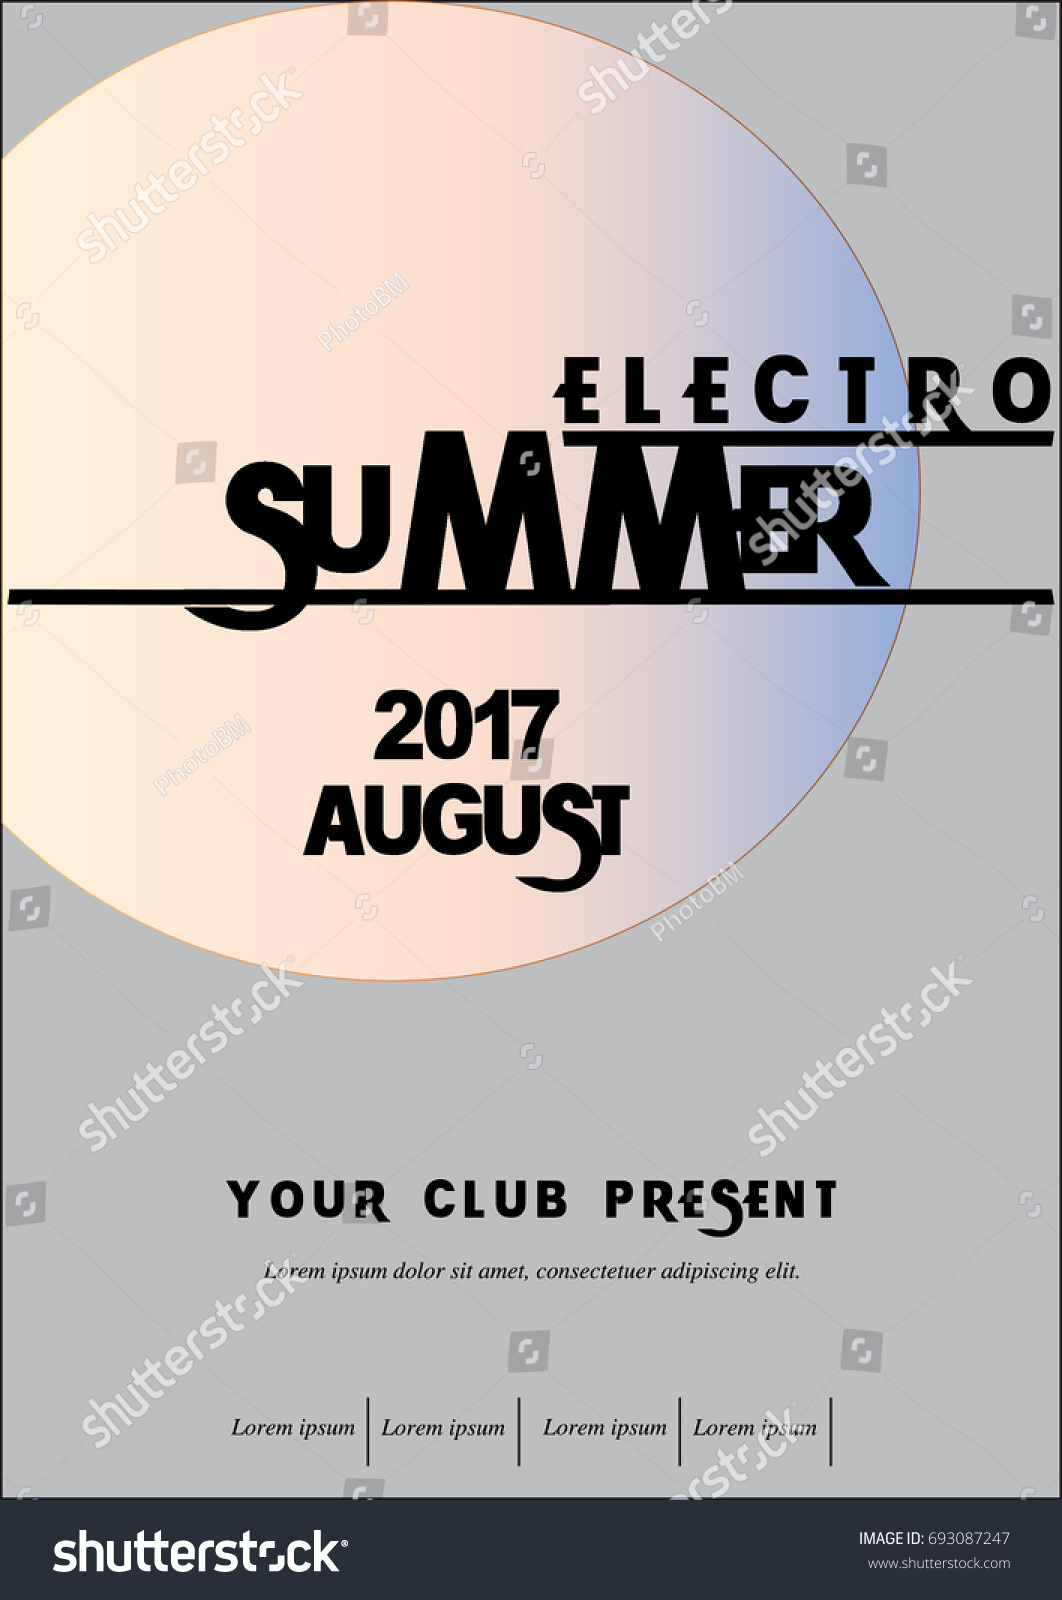 Electro Summer Music Poster Stock Vector HD (Royalty Free) 693087247 ...